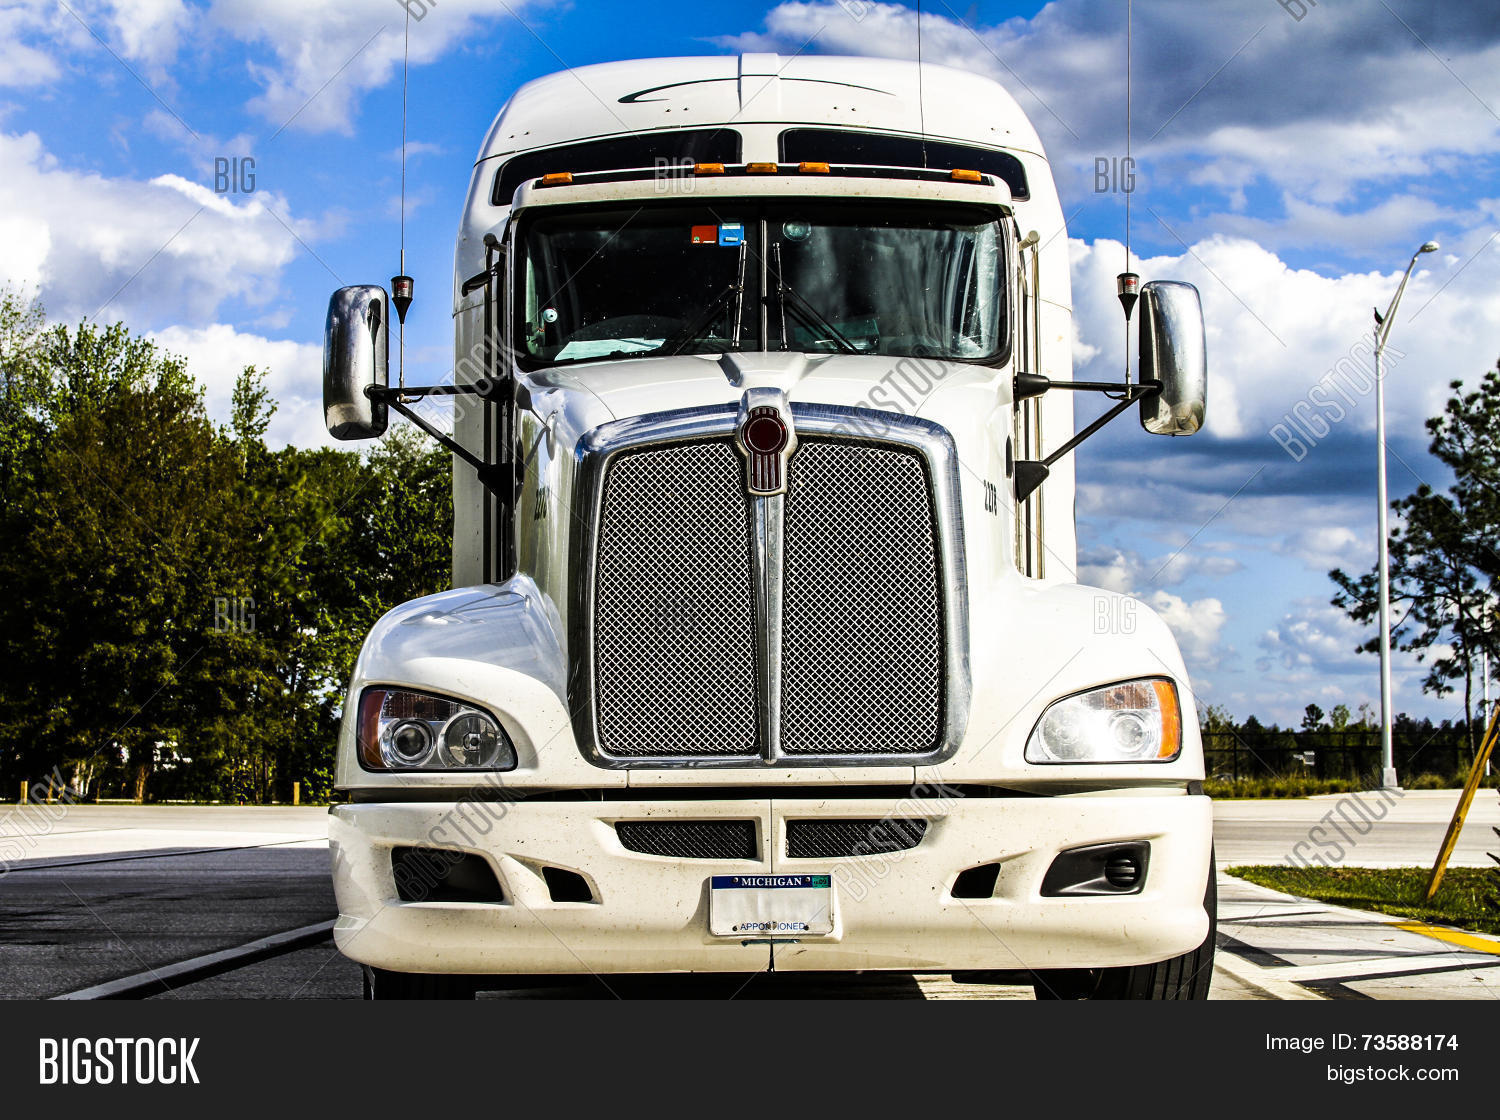 Big Rig Coming For You : Big truck coming you image photo bigstock